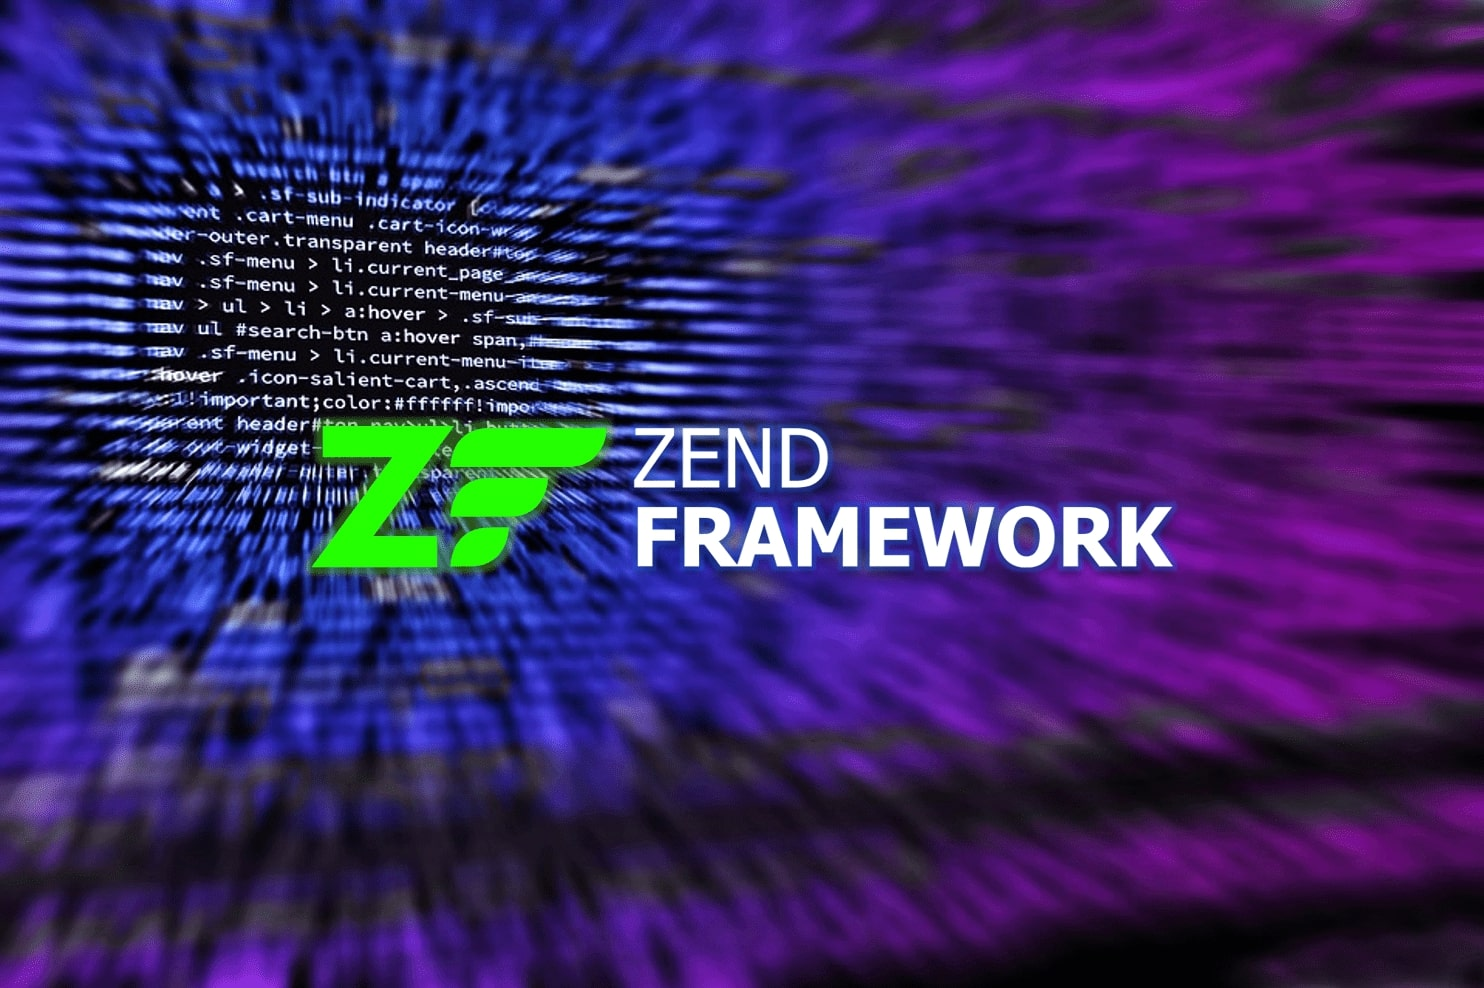 Zend Framework background